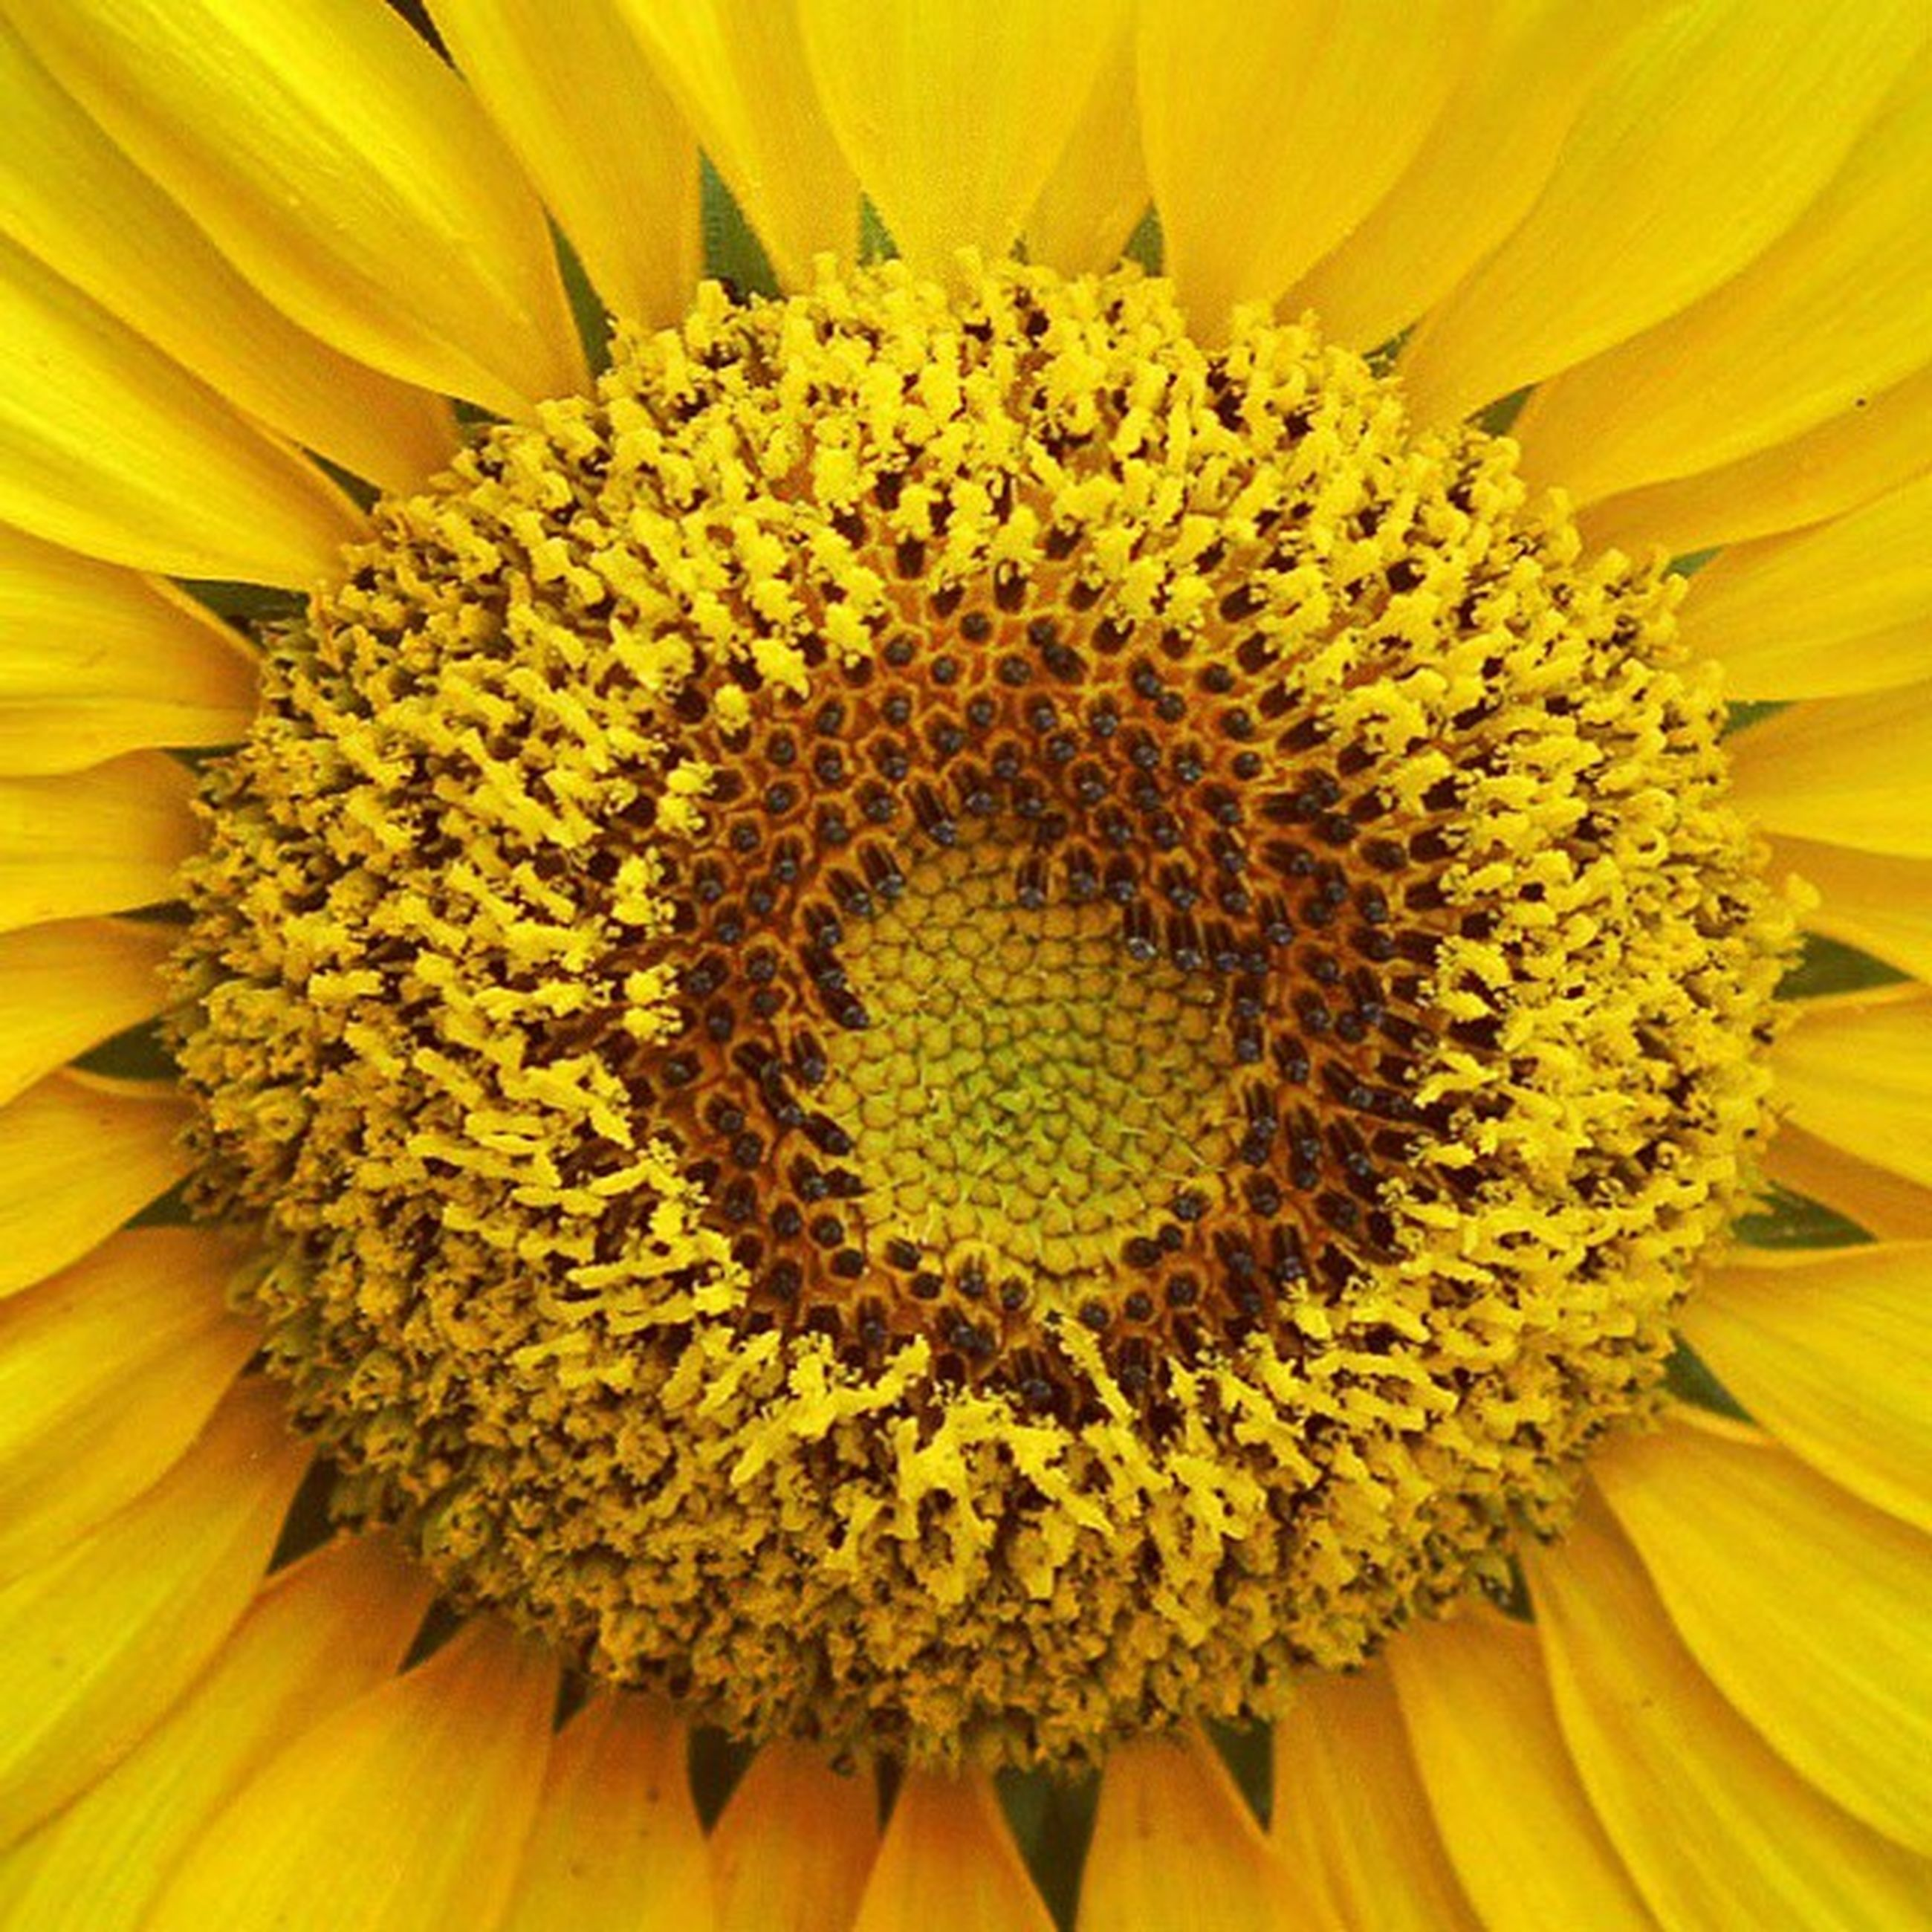 flower, yellow, flower head, freshness, petal, full frame, fragility, backgrounds, beauty in nature, growth, pollen, close-up, nature, sunflower, blooming, single flower, extreme close-up, macro, natural pattern, blossom